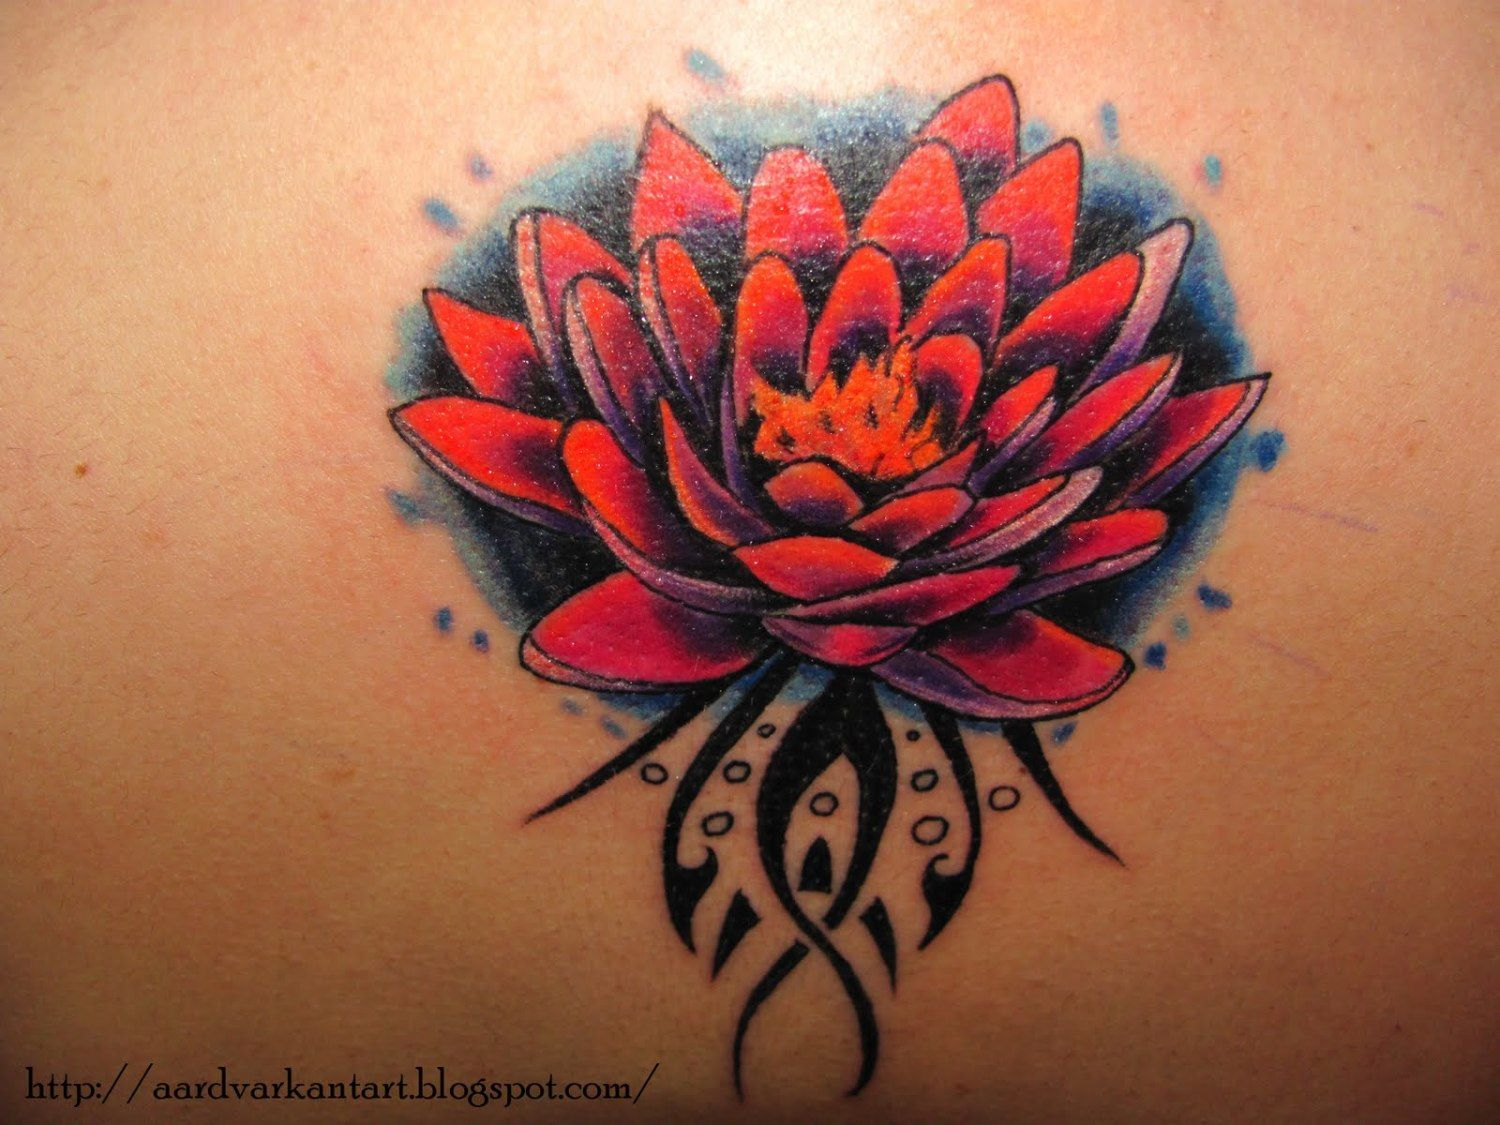 Tribal lotus flower tattoo ideas pictures tatts pinterest tribal lotus flower tattoo ideas pictures izmirmasajfo